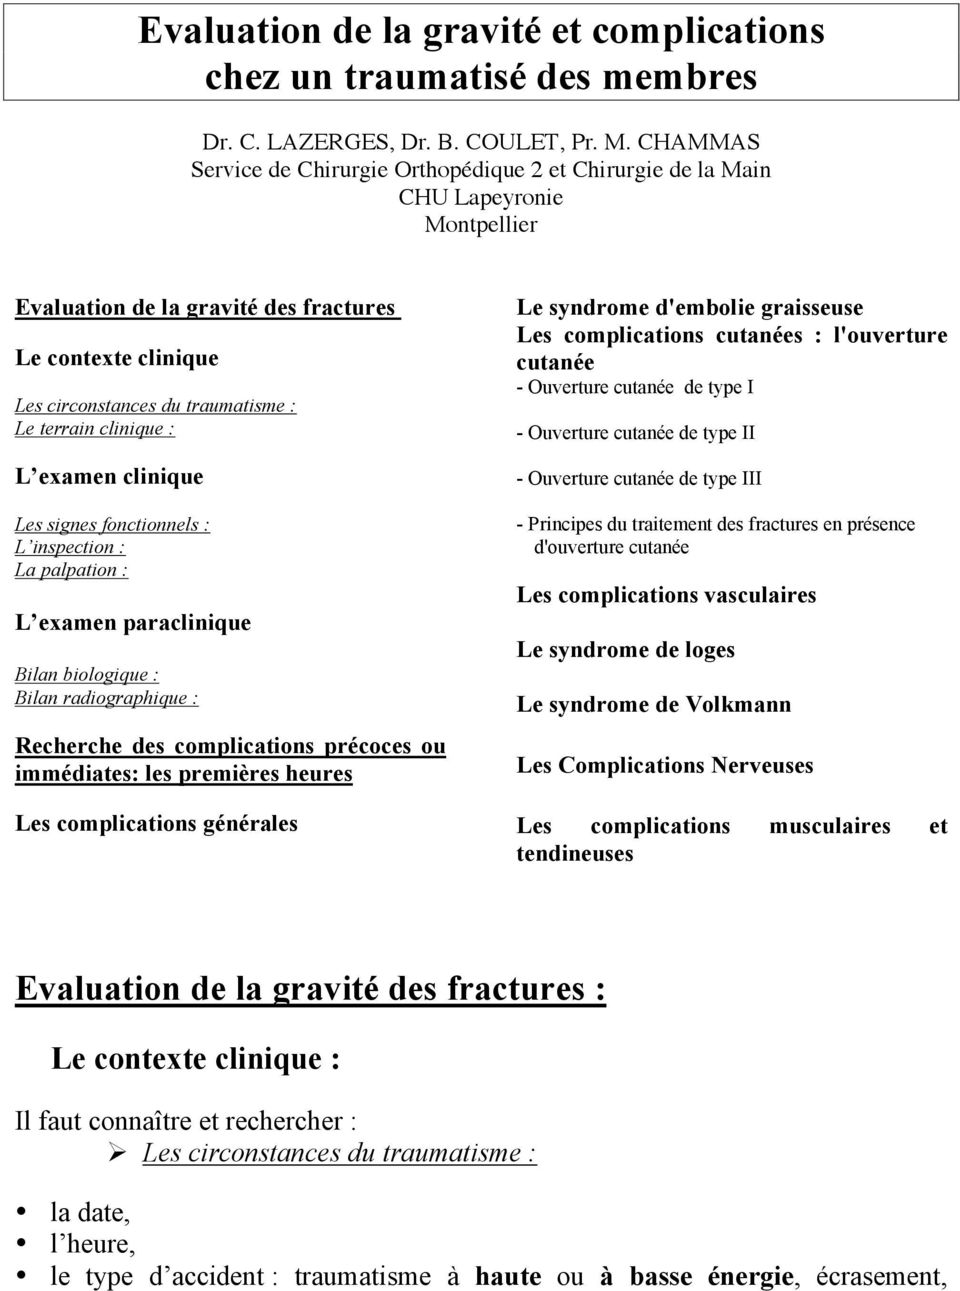 terrain clinique : L examen clinique Les signes fonctionnels : L inspection : La palpation : L examen paraclinique Bilan biologique : Bilan radiographique : Recherche des complications précoces ou